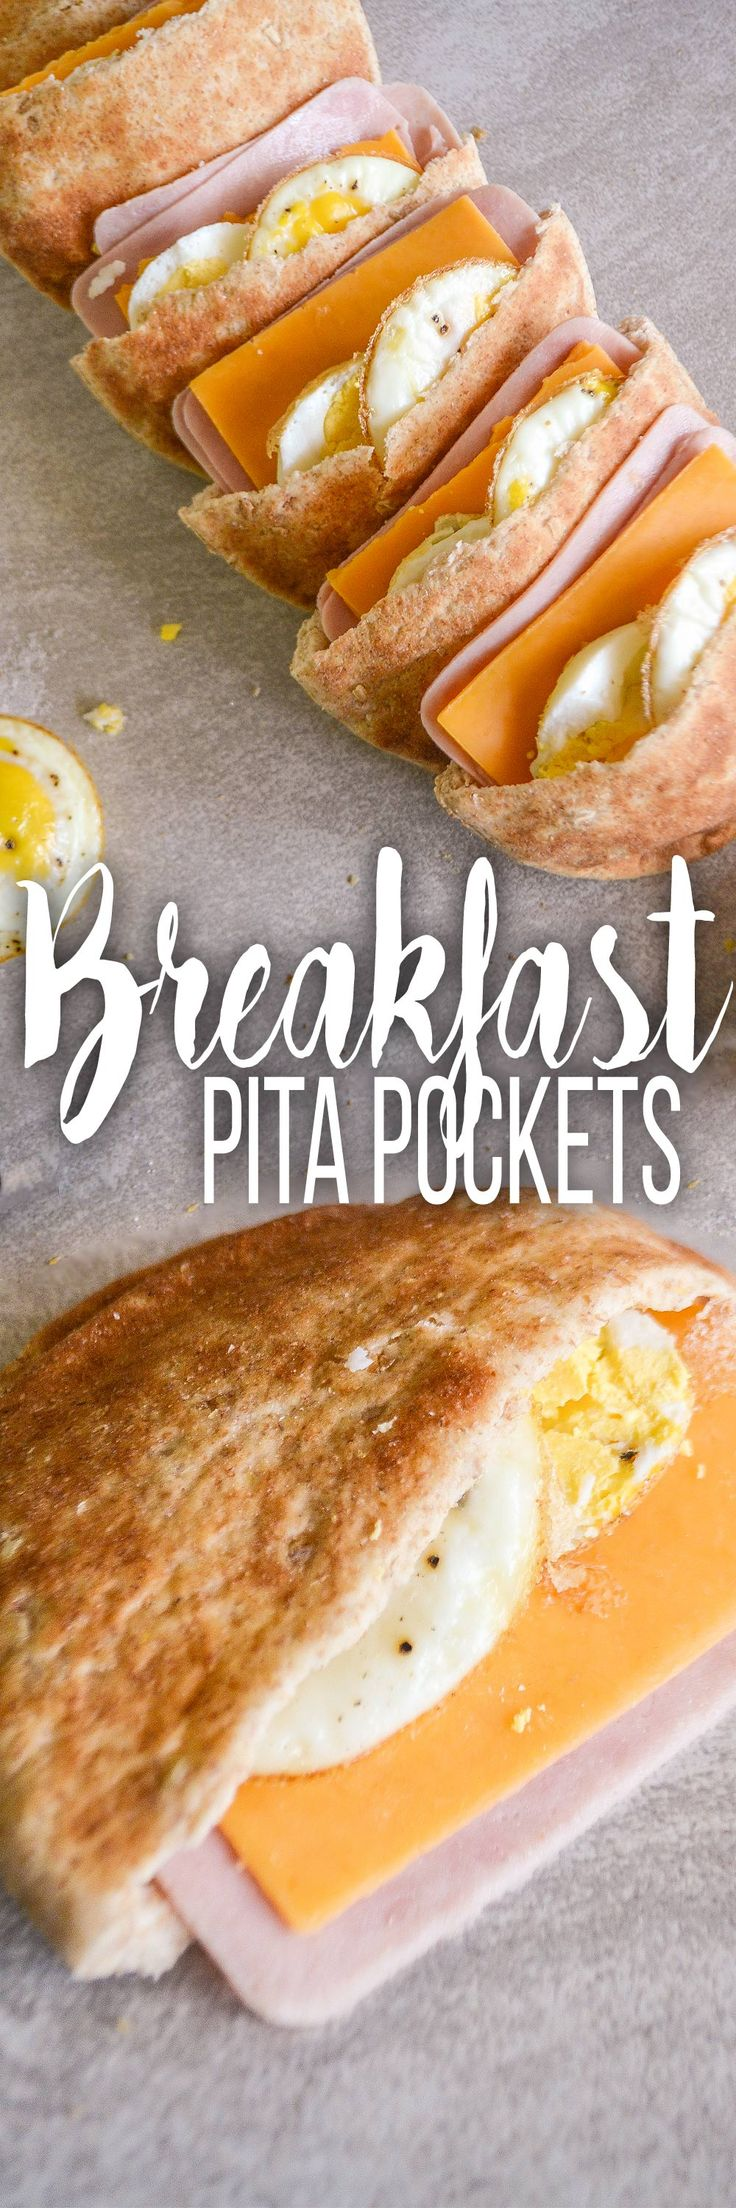 Breakfast Pita Pockets - 8 Smart Points | Stuffed with eggs, ham, and cheddar cheese. Here's an easy hot breakfast that you can quickly make for the whole week.